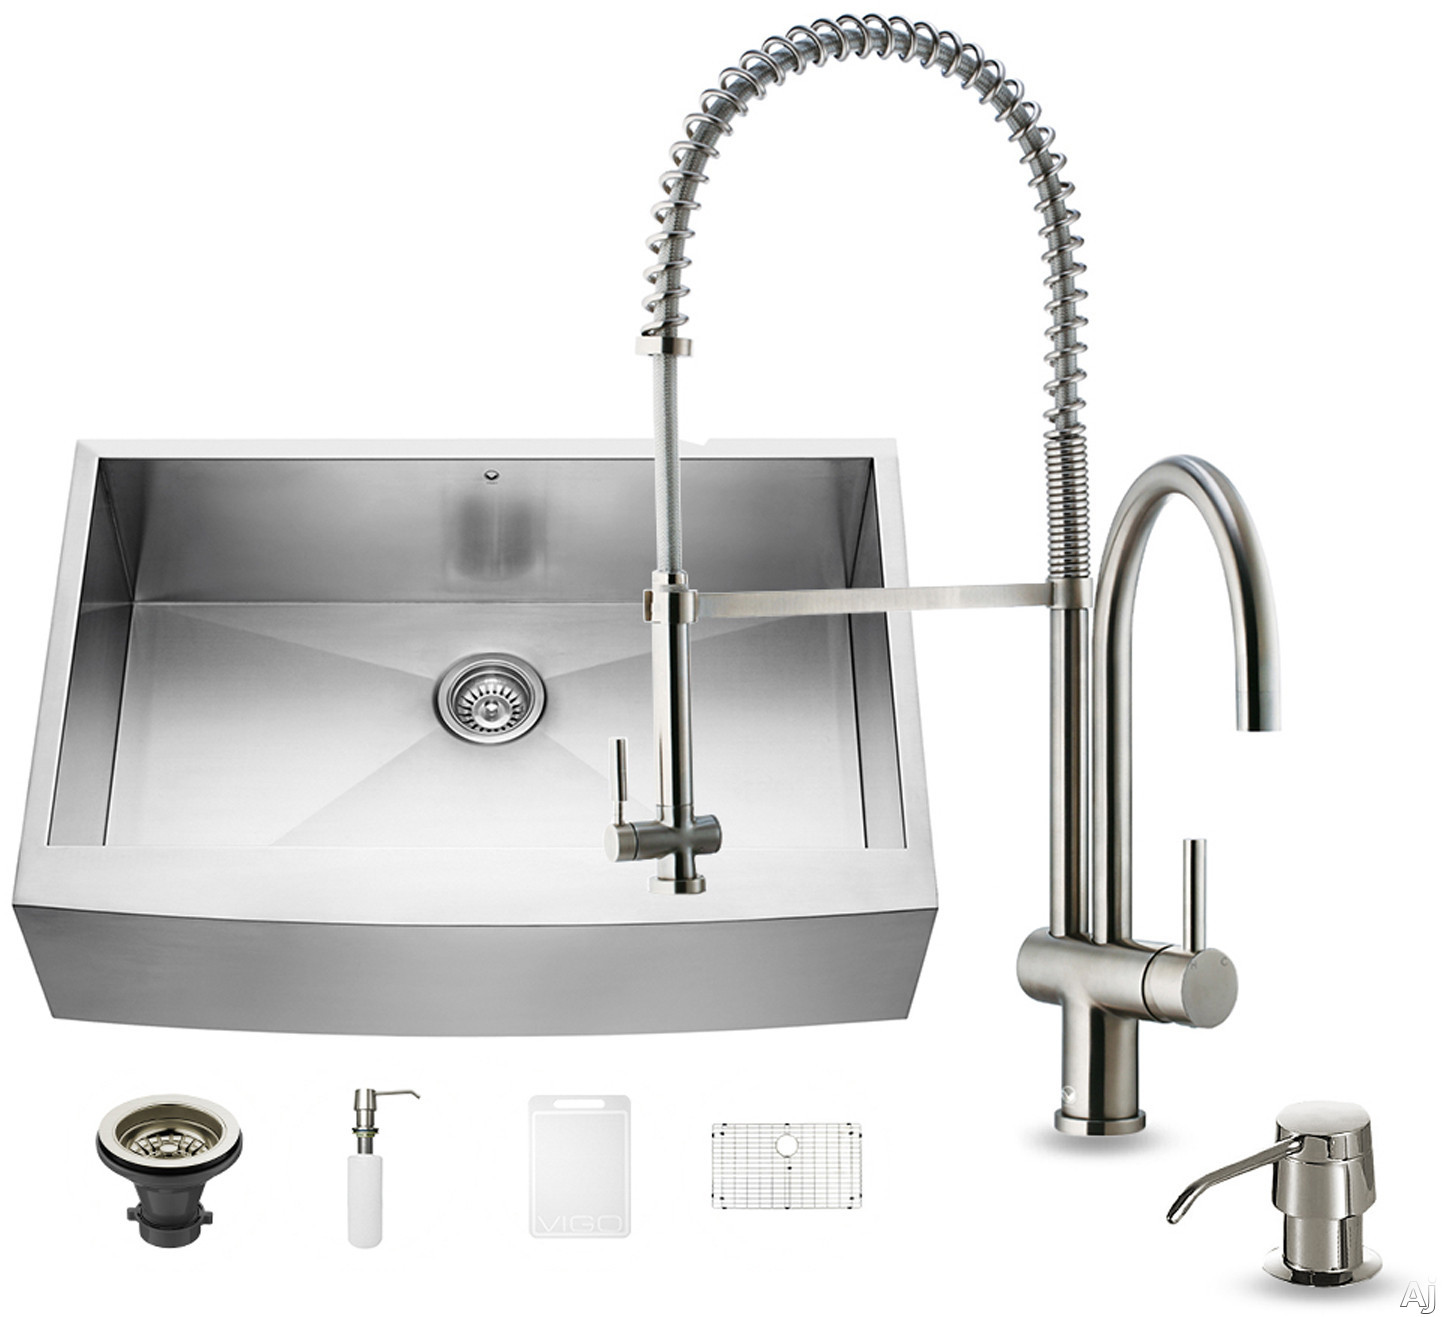 Vigo Industries VG15125 33 Inch Farmhouse Stainless Steel Kitchen Sink with 9 7/8 Inch Bowl Depth, 16-Gauge, Stainless Steel Faucet Set, Bottom Grid, Strainer and Soap Dispenser